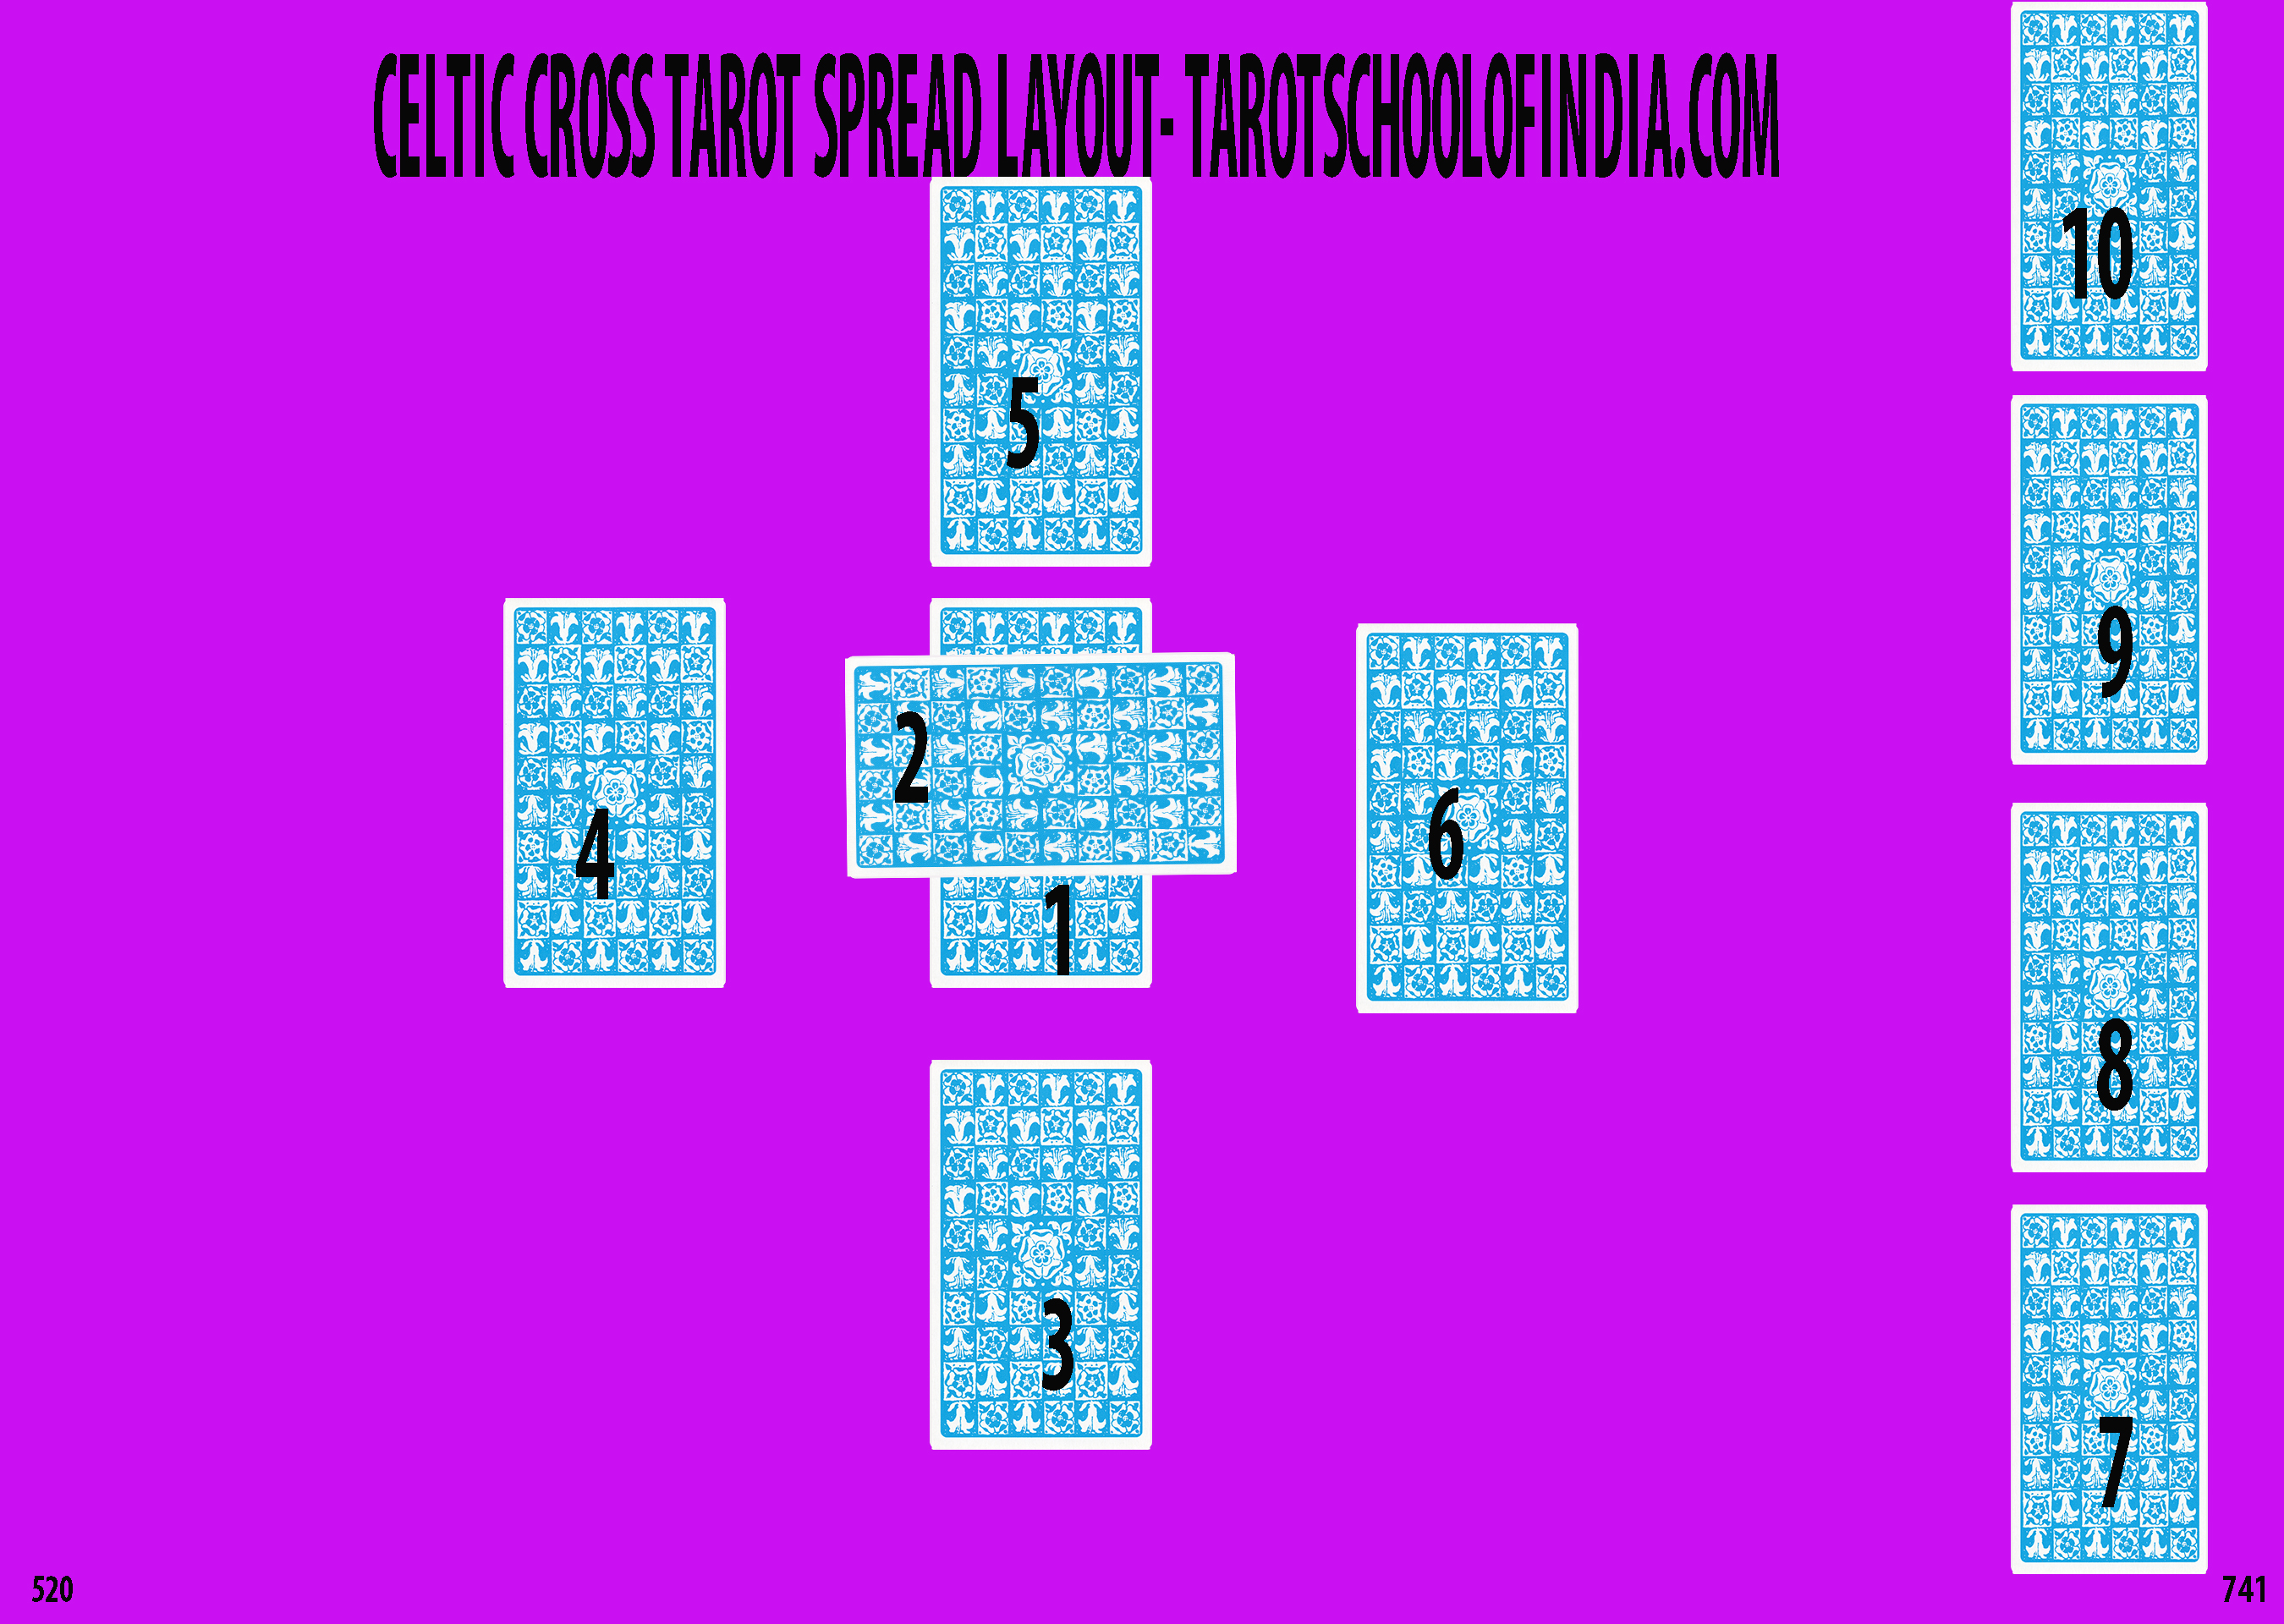 Image showing Lay out of Celtic Cross Tarot Spread